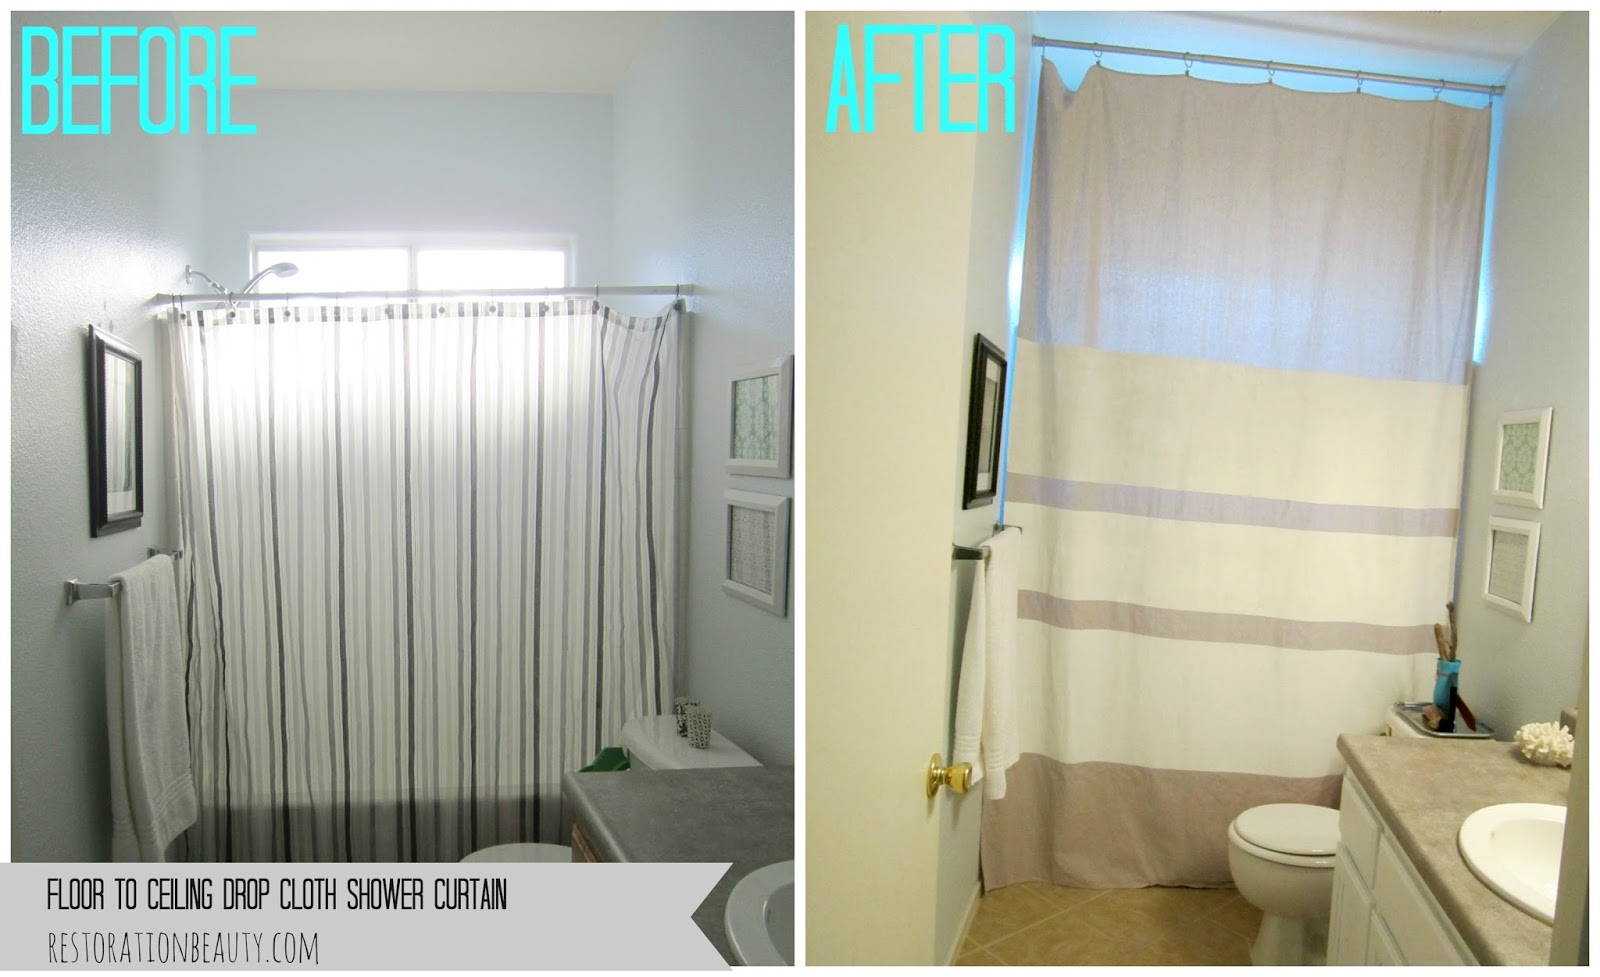 Restoration Beauty: Floor To Ceiling Drop Cloth Shower Curtain